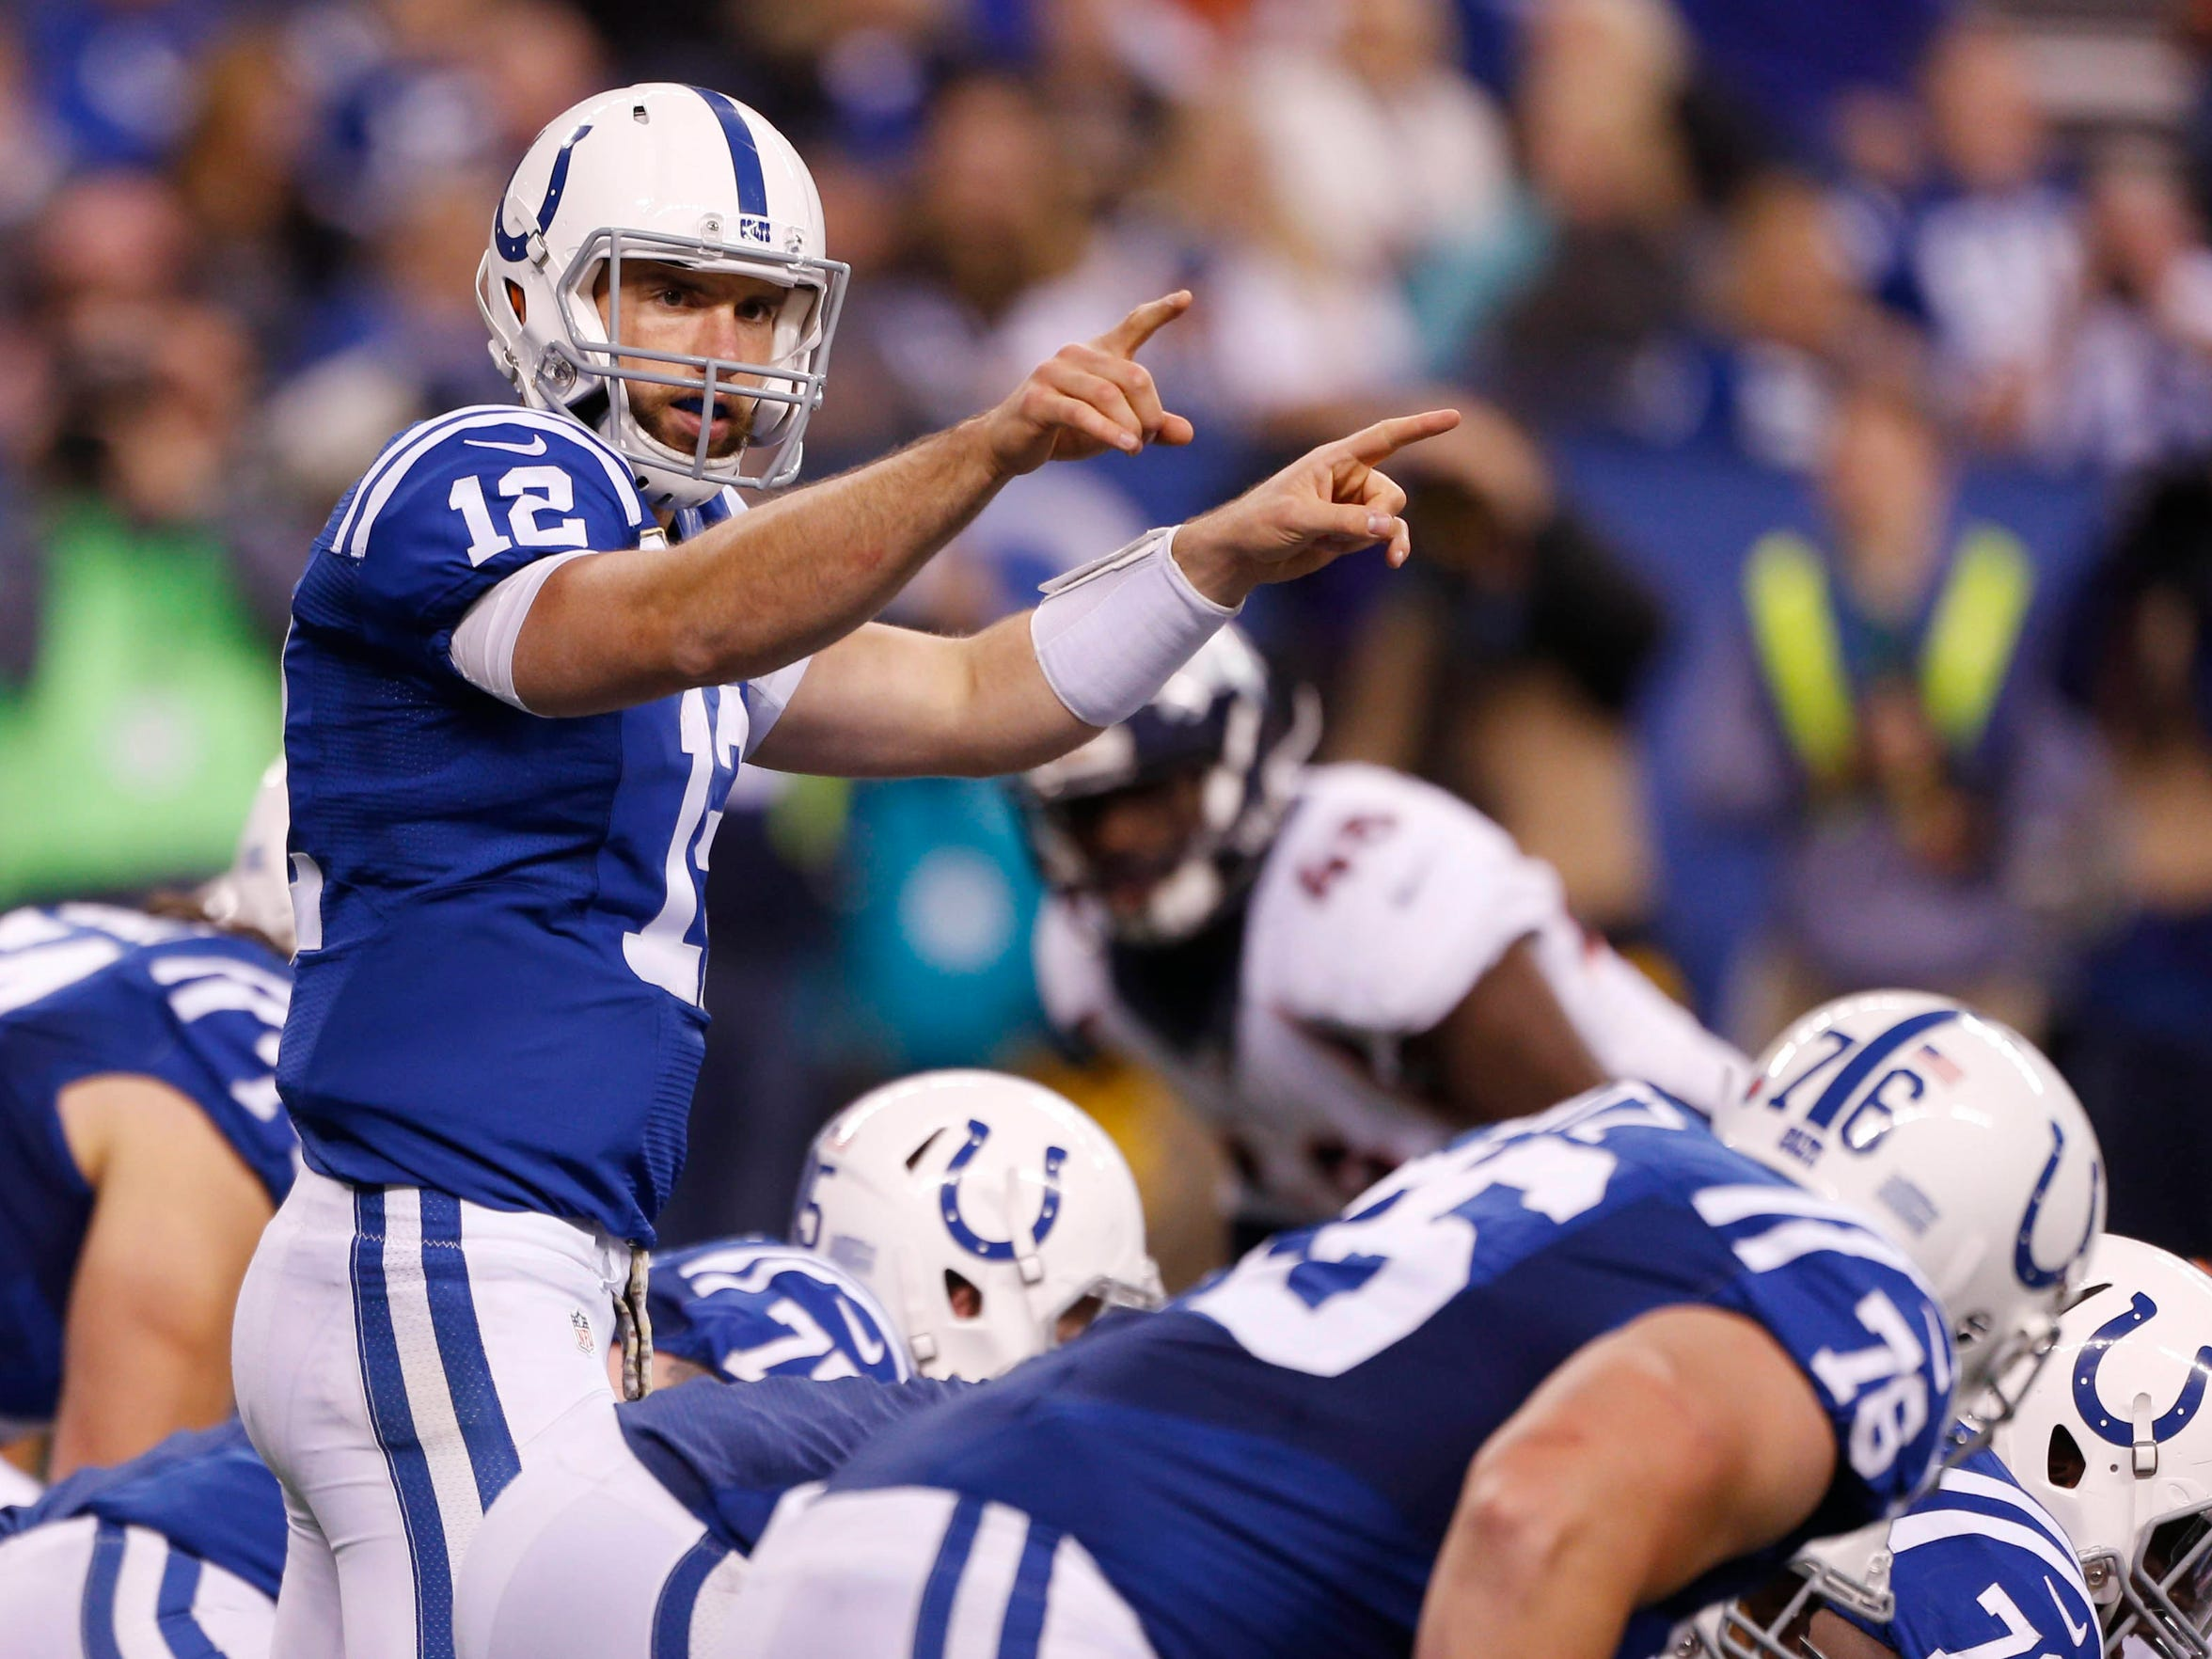 Andrew Luck is the quarterback of the Indianapolis